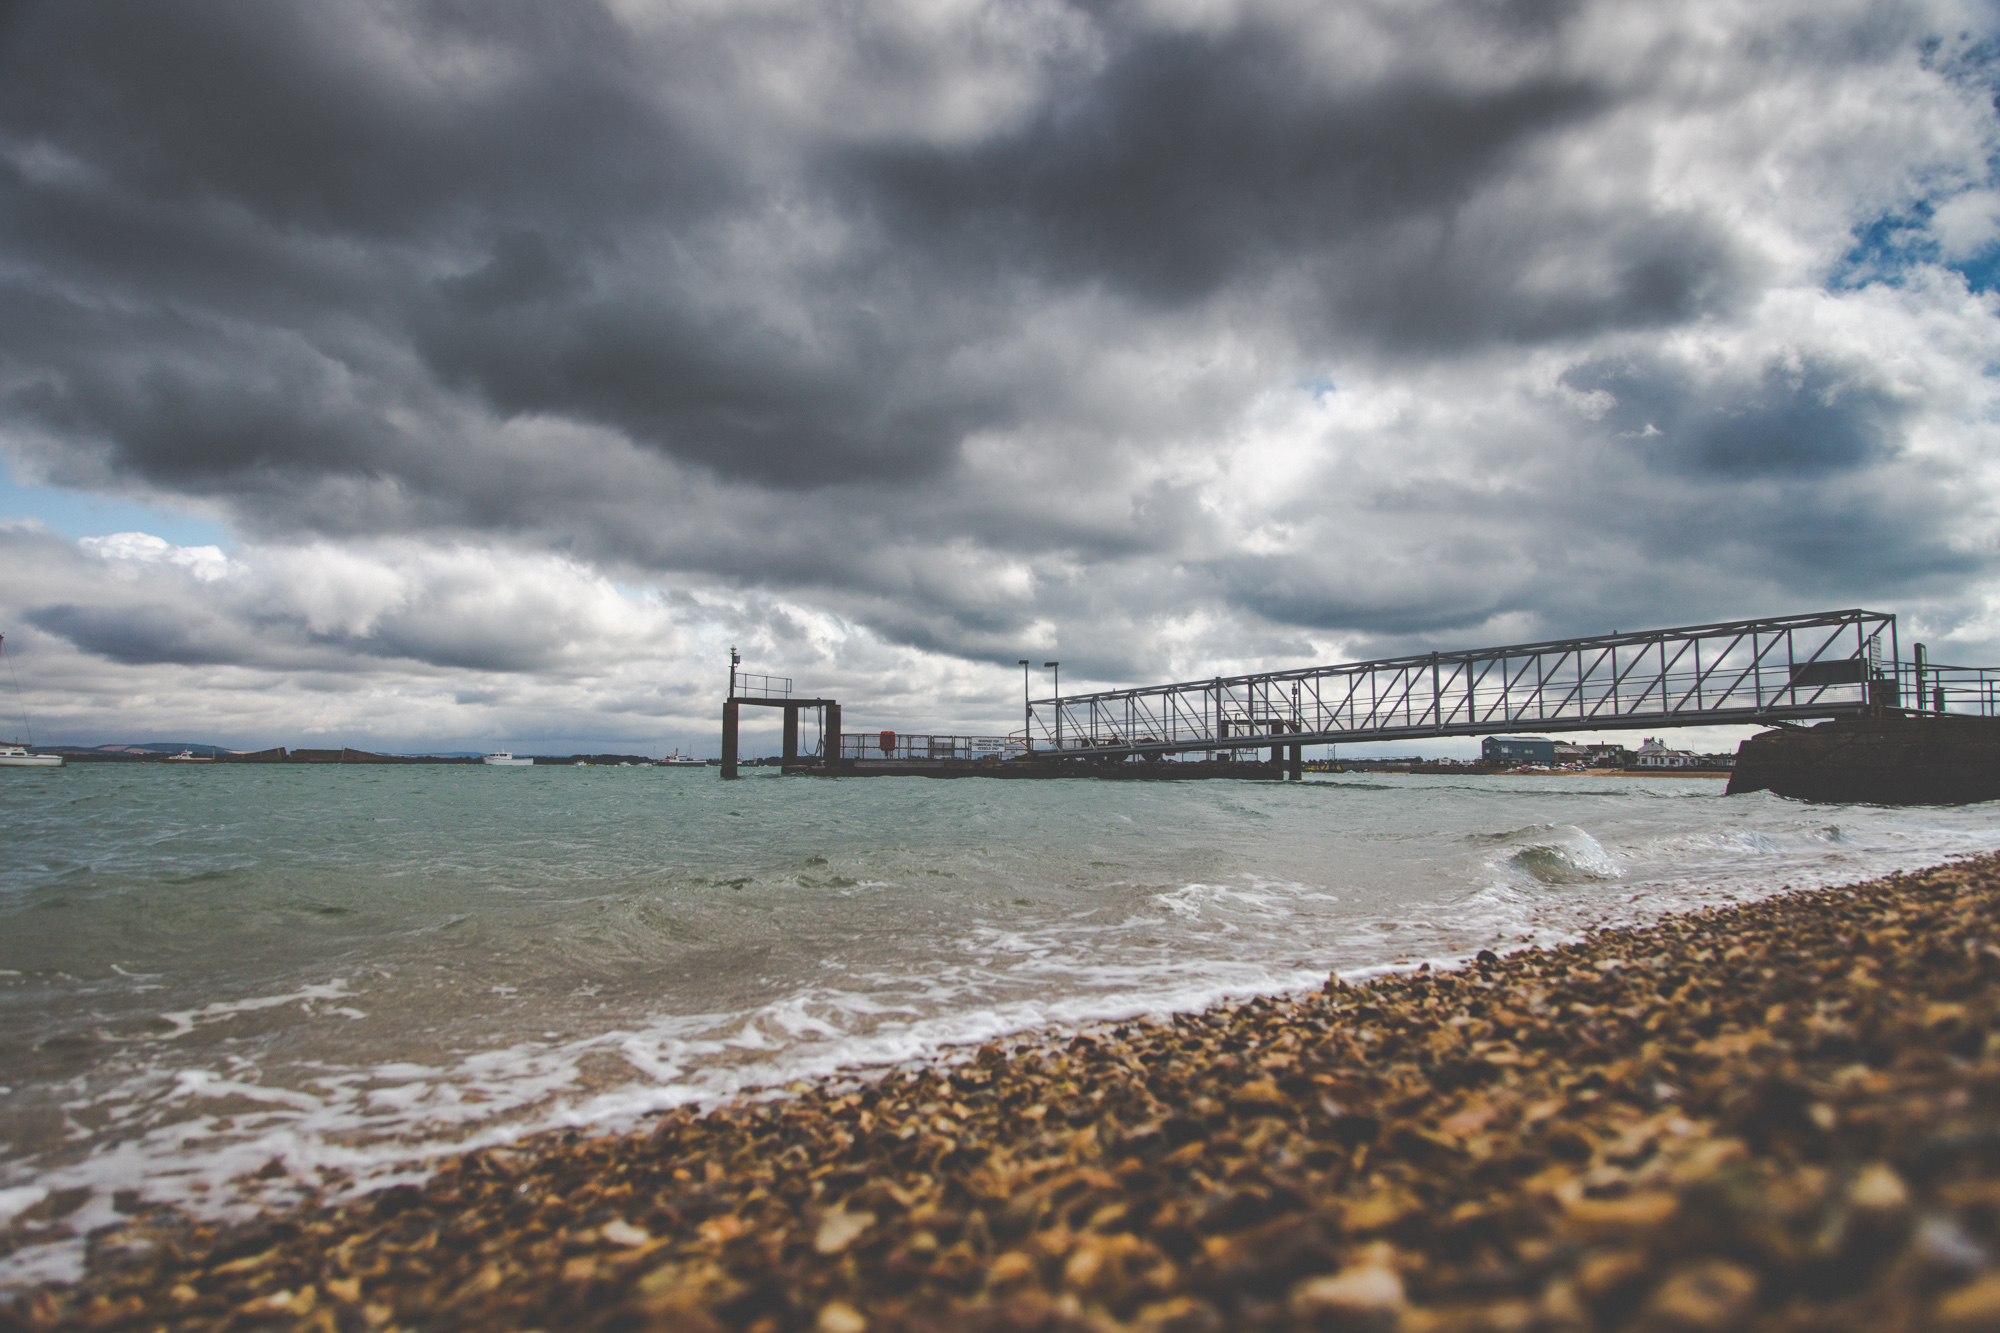 View of the Hayling Ferry from the Eastney Beach, with a rising tide and a cloudy sky